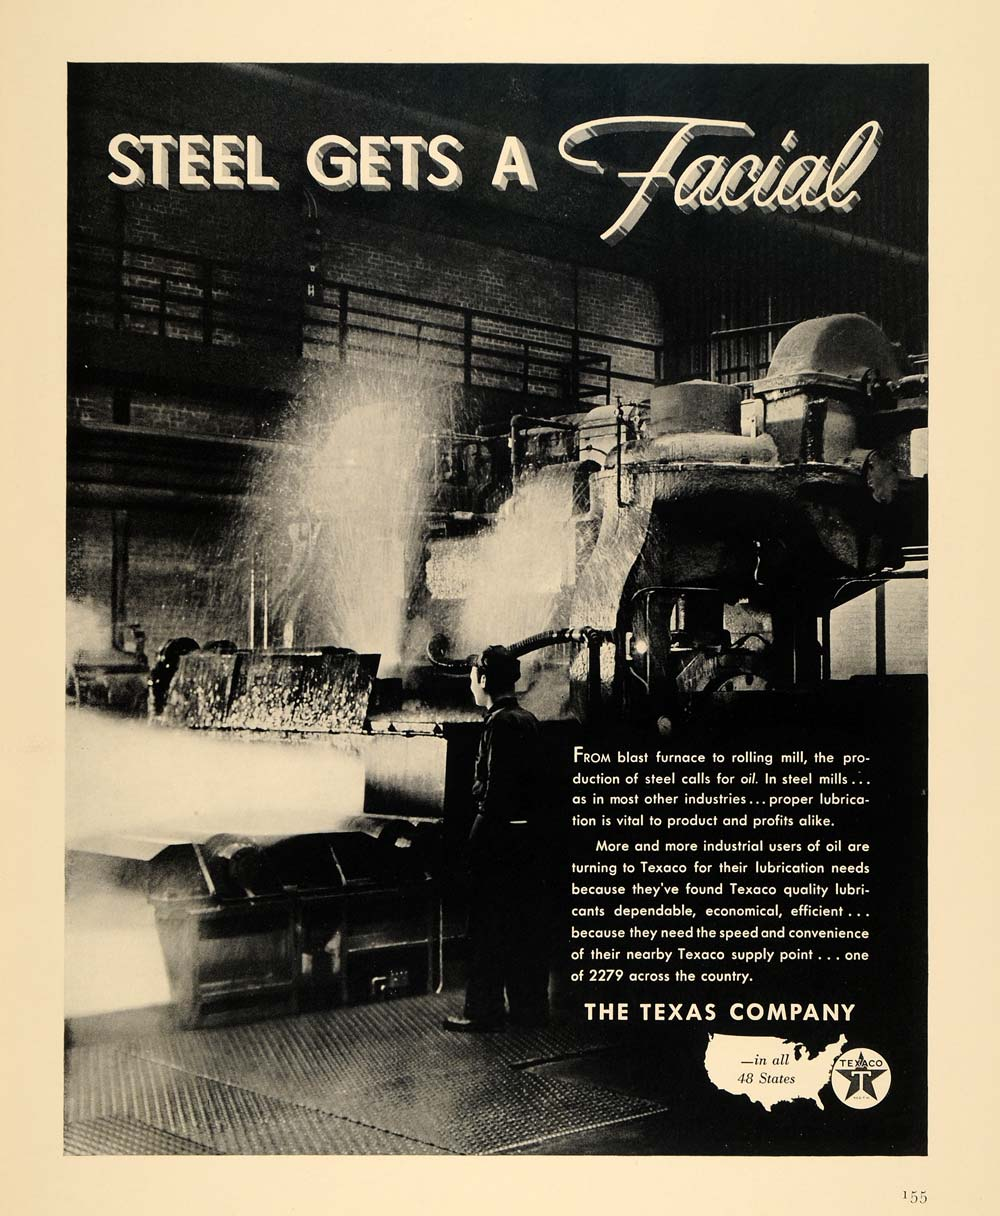 1940 Ad Texaco Oil Steel Production Blast Furnace Texas - ORIGINAL F4A